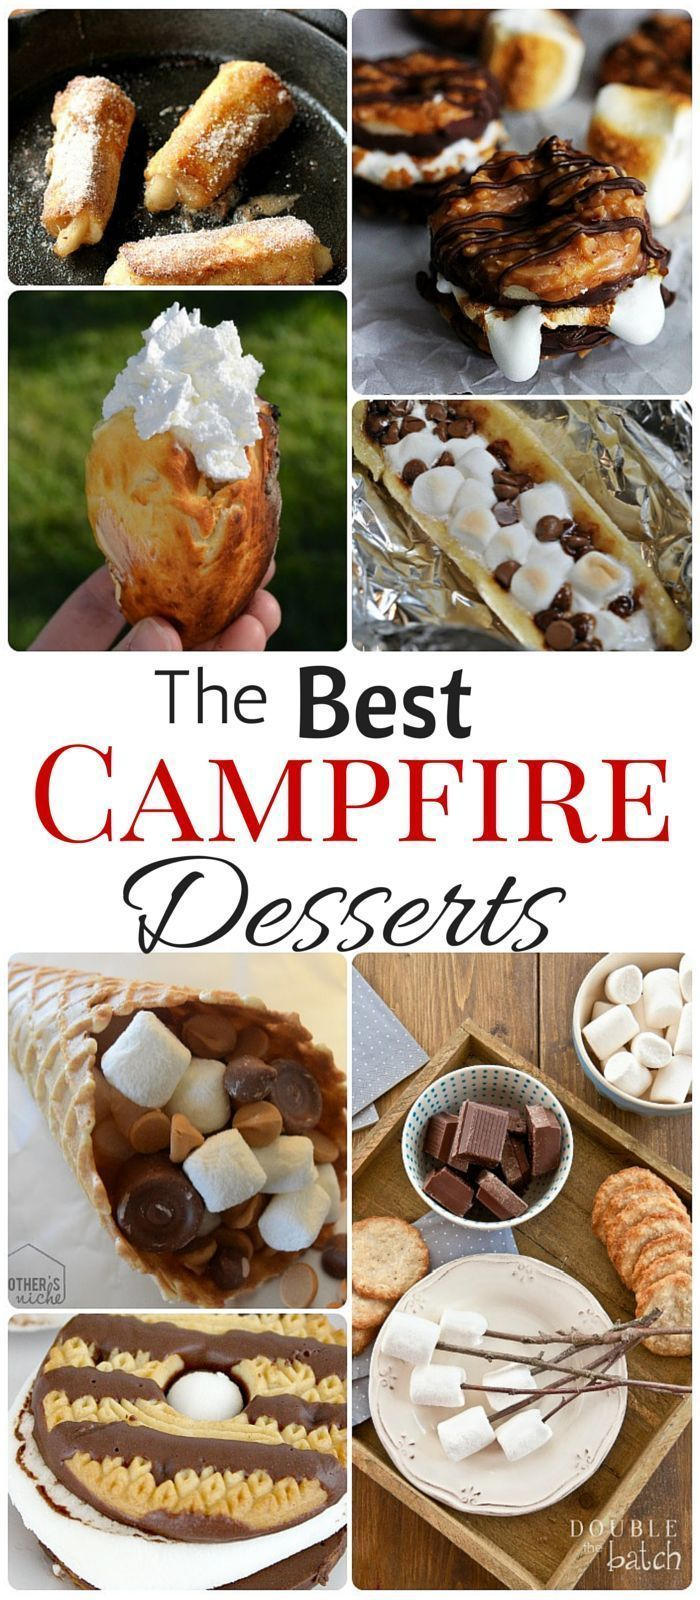 Nothing better than desserts around the campfire! Pinning this for my next camping trip! https://uk.pinterest.com/uksportoutdoors/electronic-hiking-camping-equipment/pins/